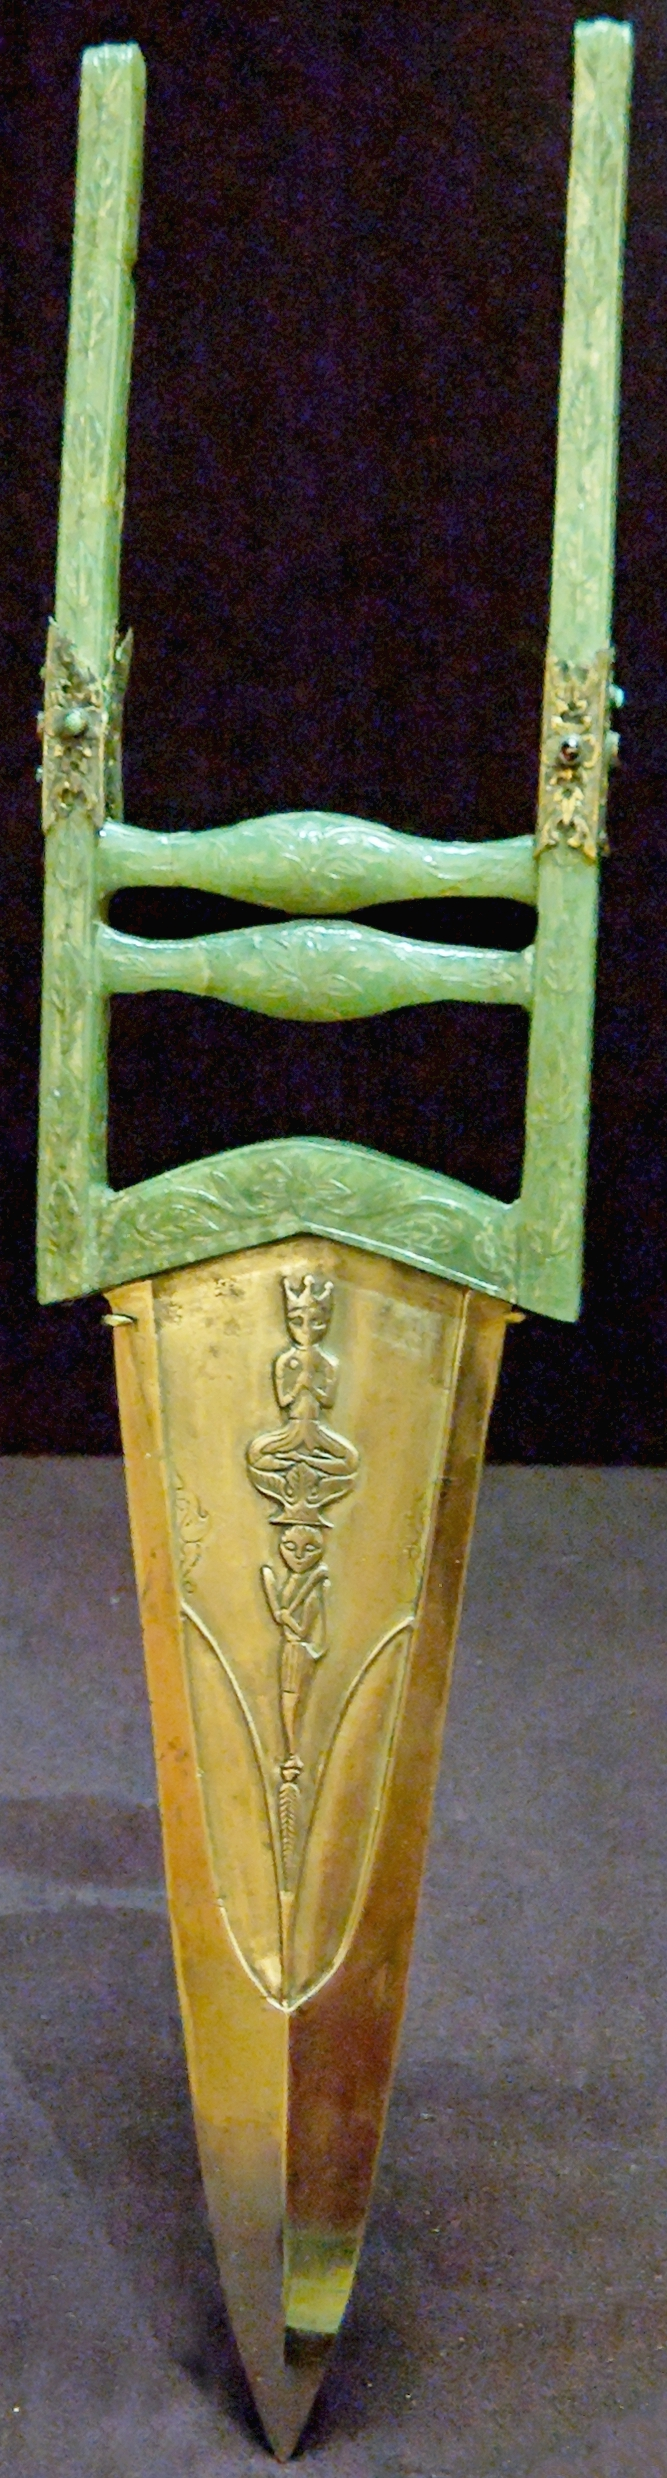 Indian (Mughal)  katar, 17th to 18th century, steel blade decorated with figures of divinities in relief, jade and steel hilt inlaid with gold and semi-precious stones. Louvre Museum.